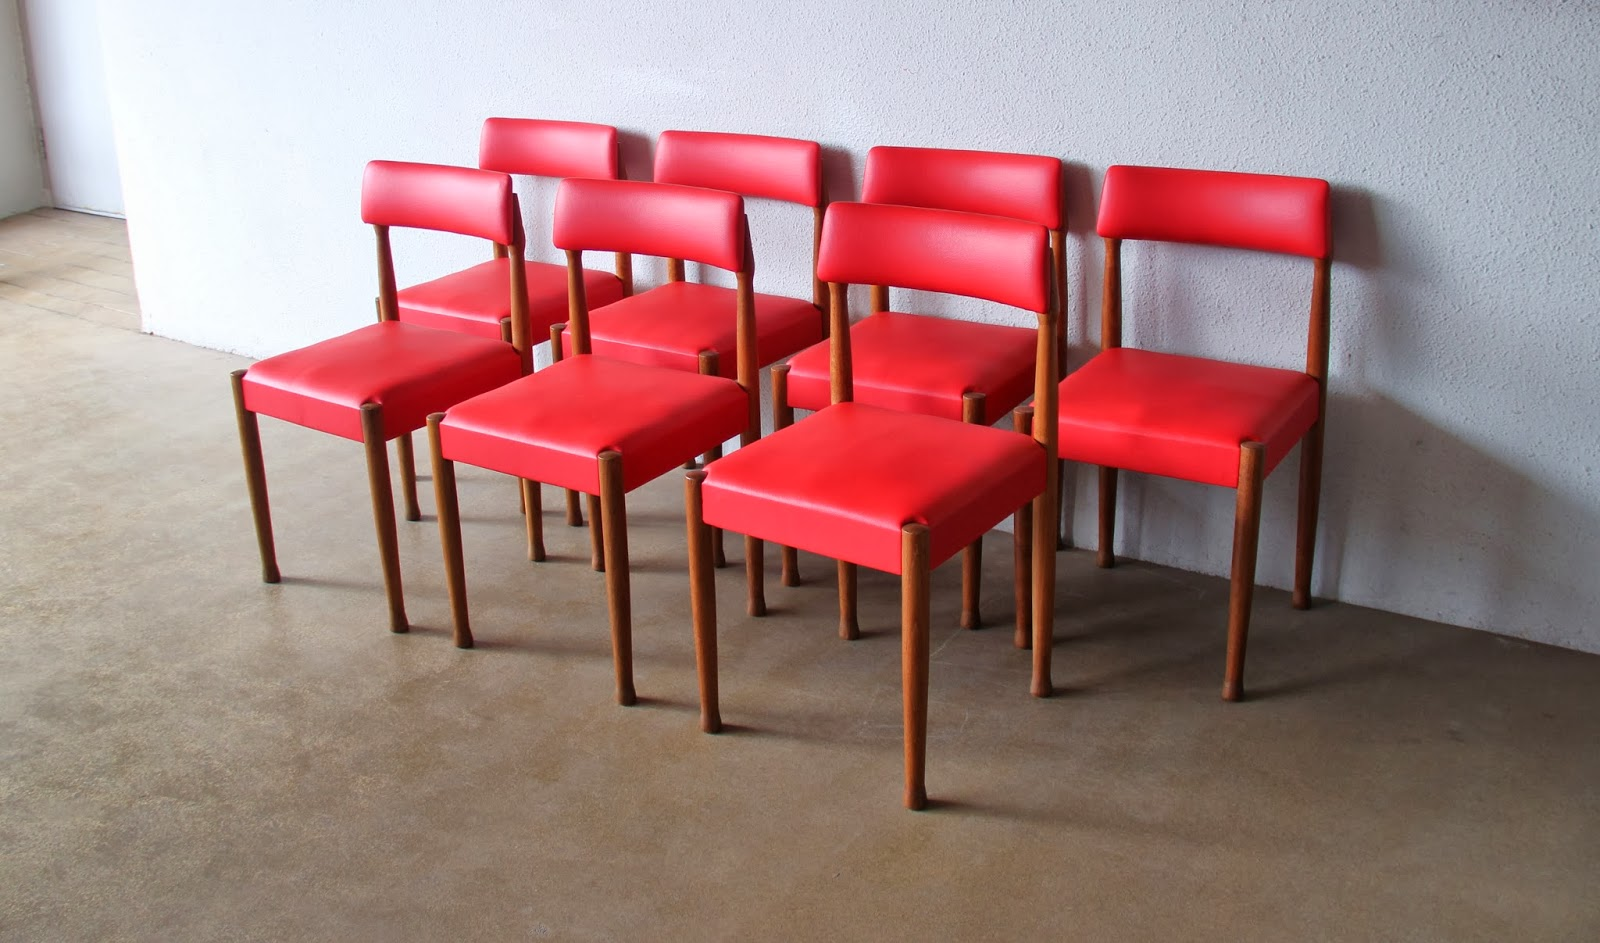 7 Vintage Midcentury Dining Chairs Restored And Reupholstered For